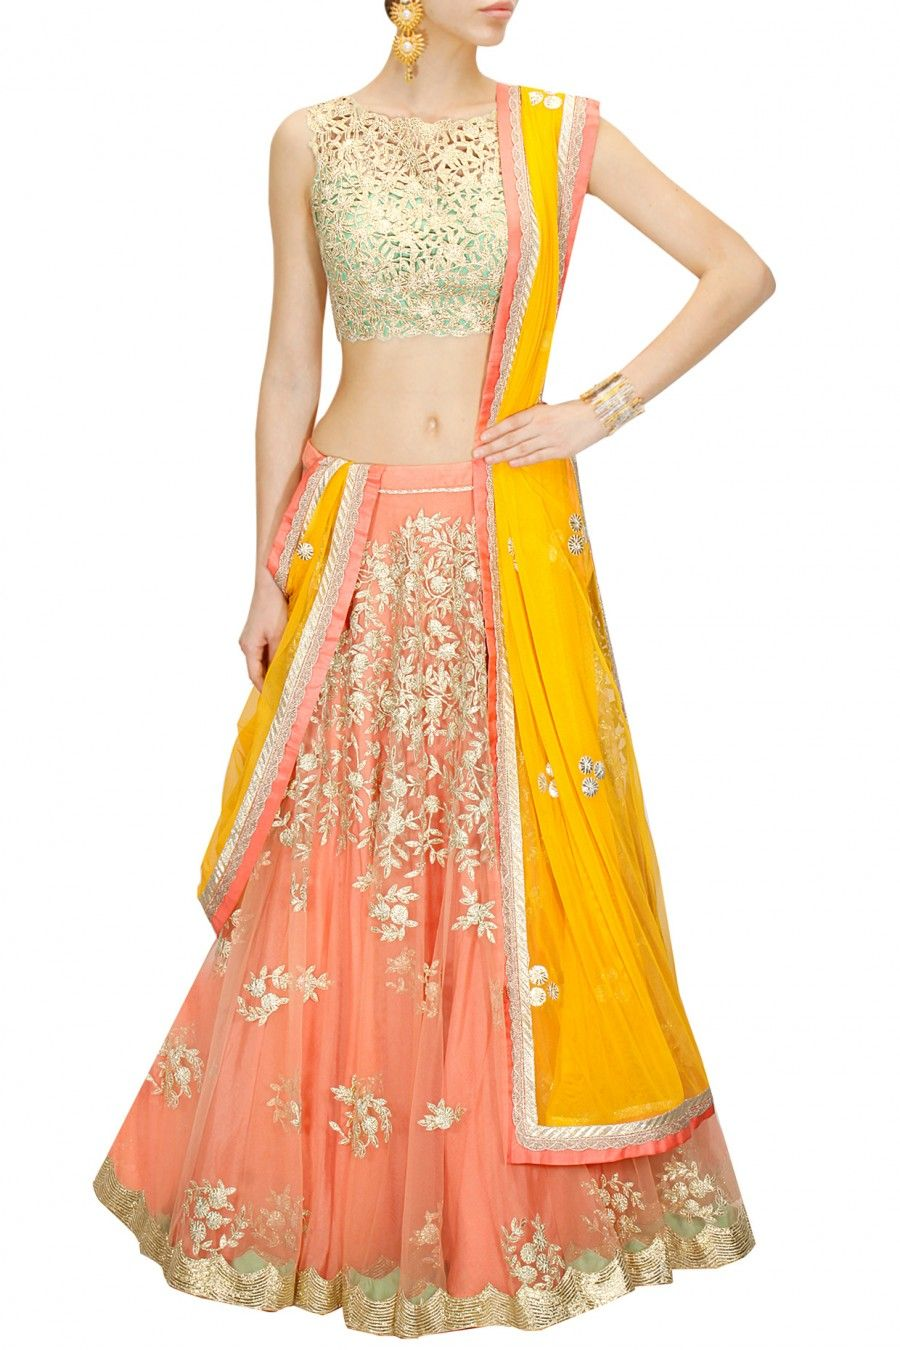 363ab8a0d96e75 Peach embroidered lehenga with mint green cutwork blouse and yellow dupatta  available only at Pernia s Pop-Up Shop.